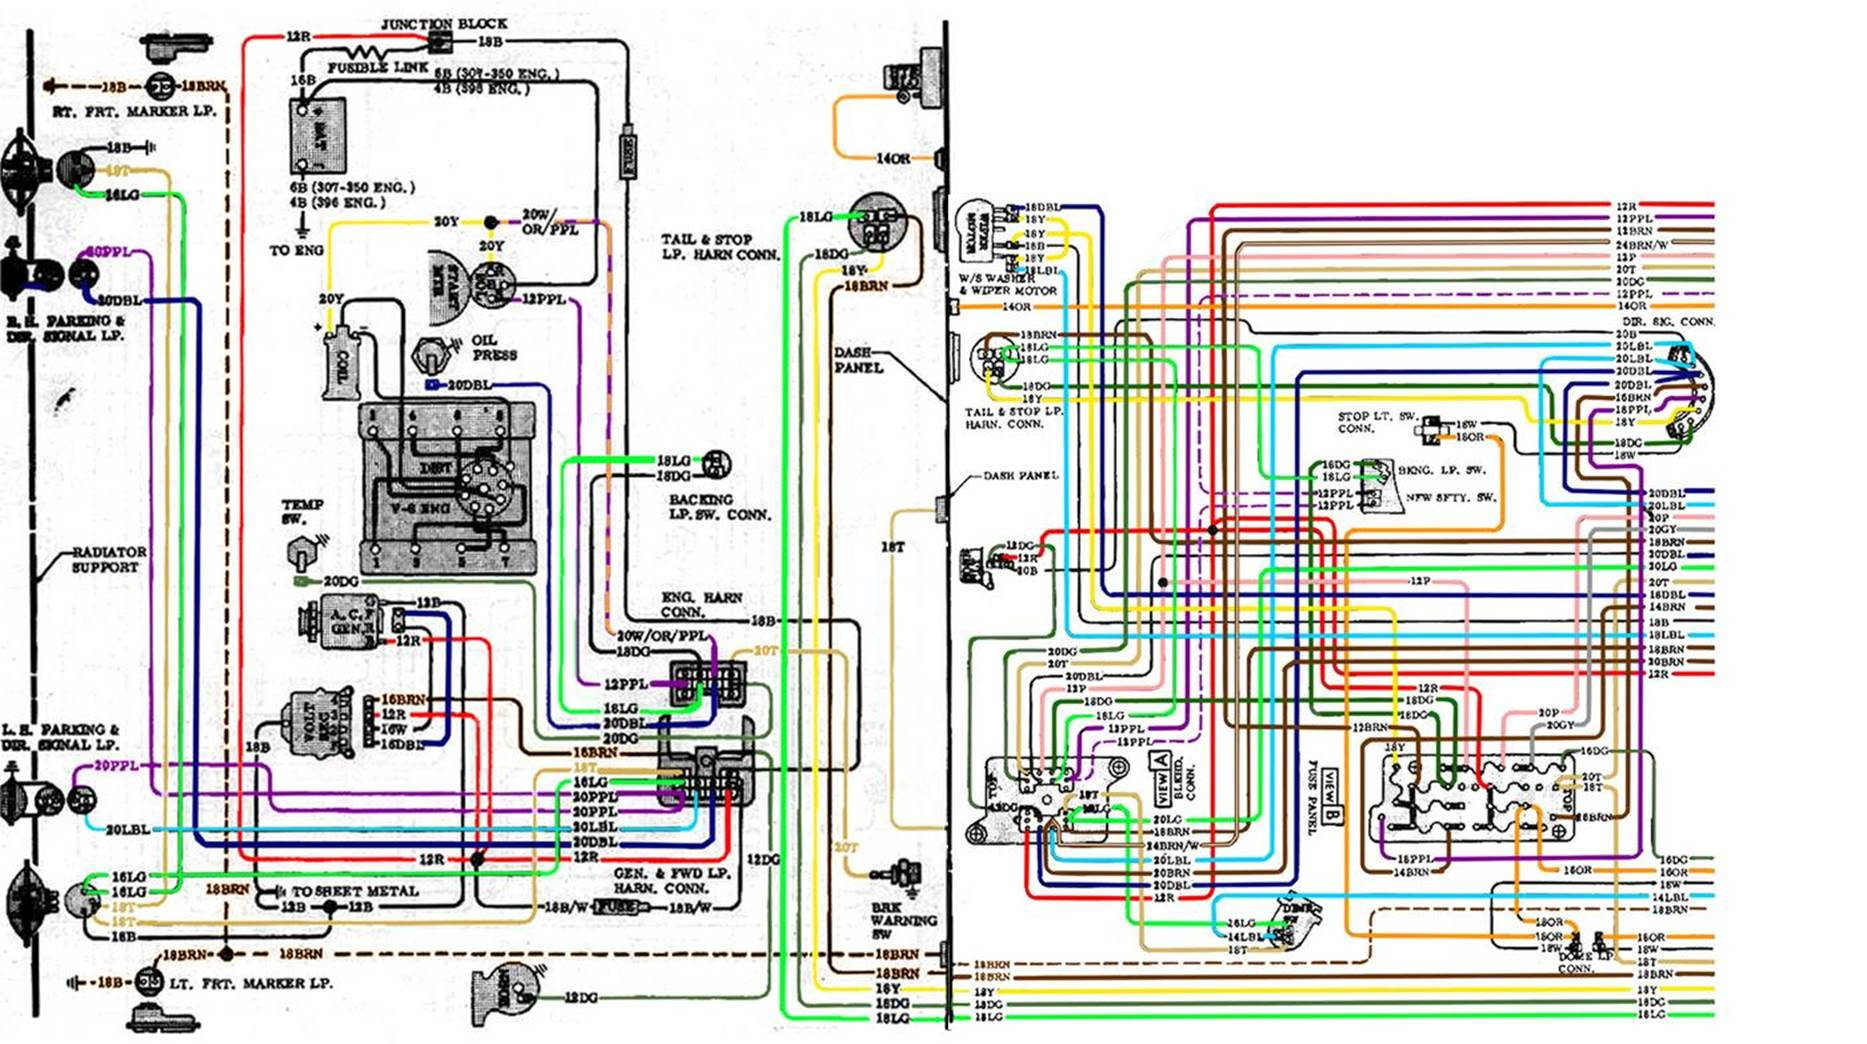 image002 1972 chevelle wiring diagram 1972 chevelle horn wiring \u2022 free 1969 chevelle wiring diagram at cos-gaming.co